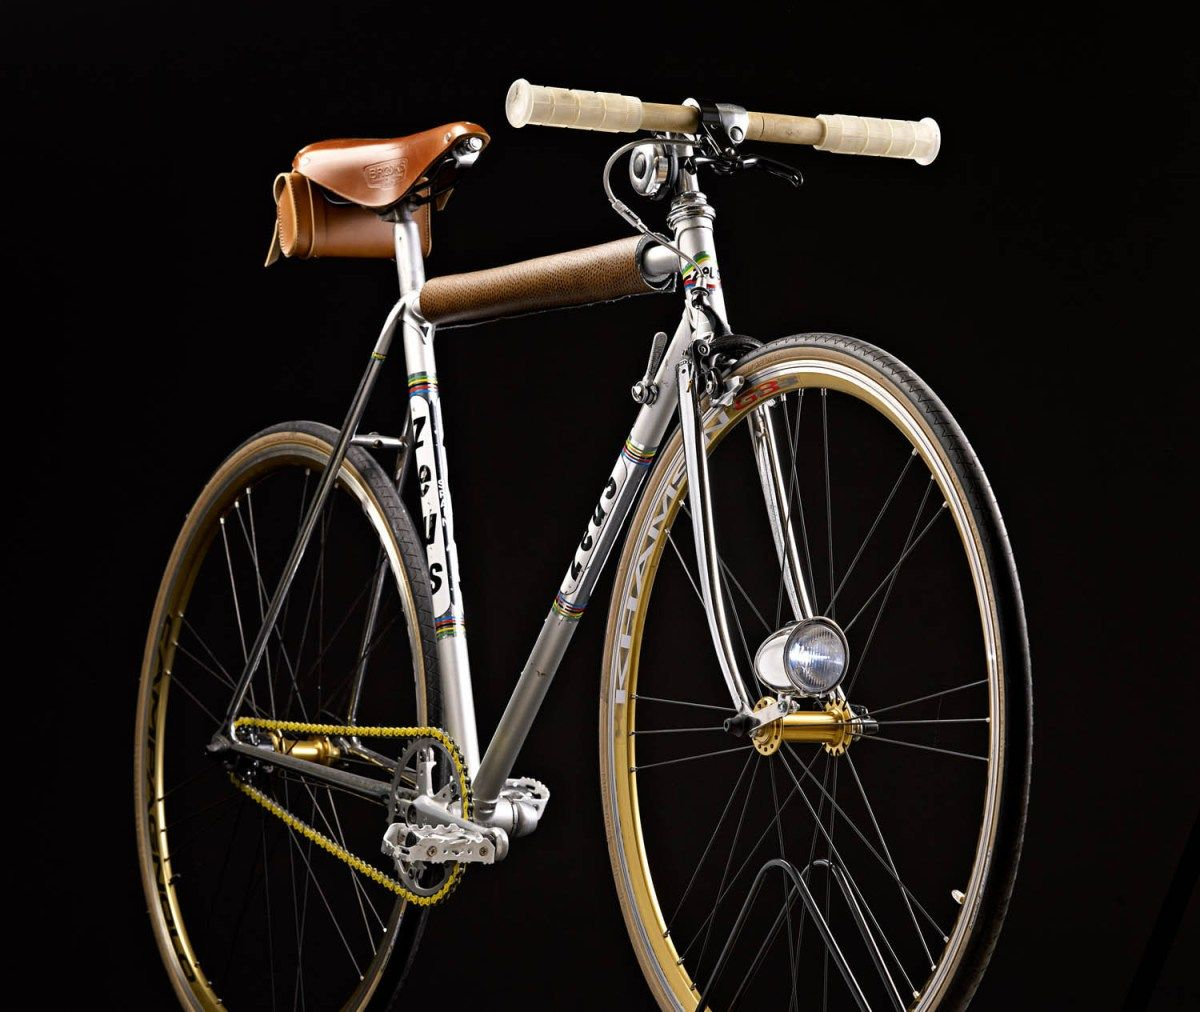 biciclasica | Classic bicycles made today – Bicicletas clasicas hechas hoy | Page 4